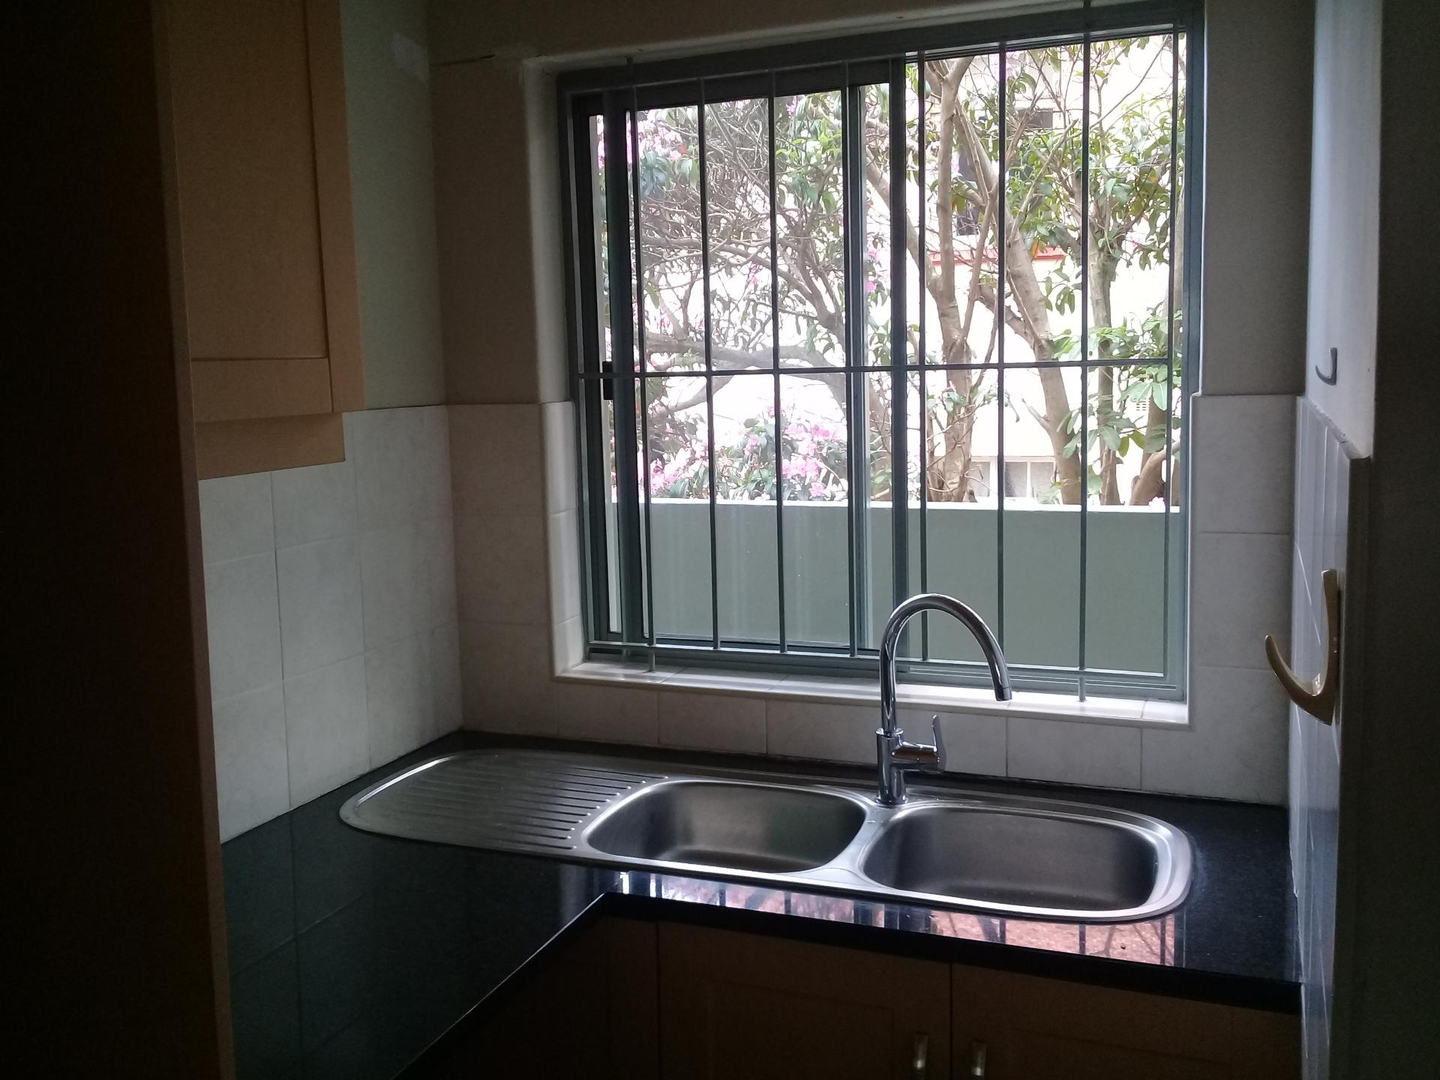 2 Bedroom Apartment for sale in Windermere 1831184 : photo#2